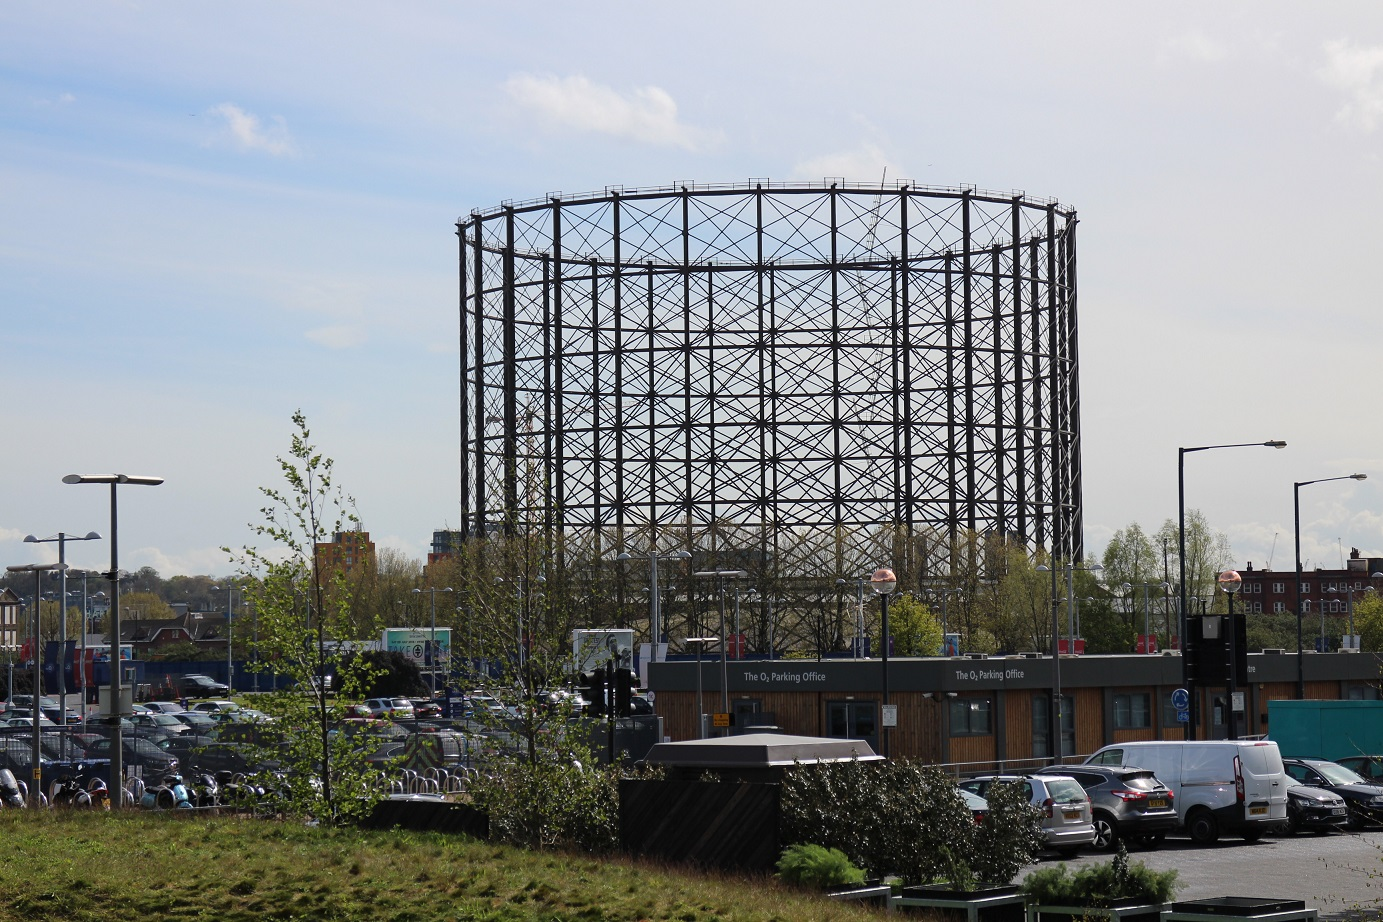 East Greenwich gasholder. © Robert Mason